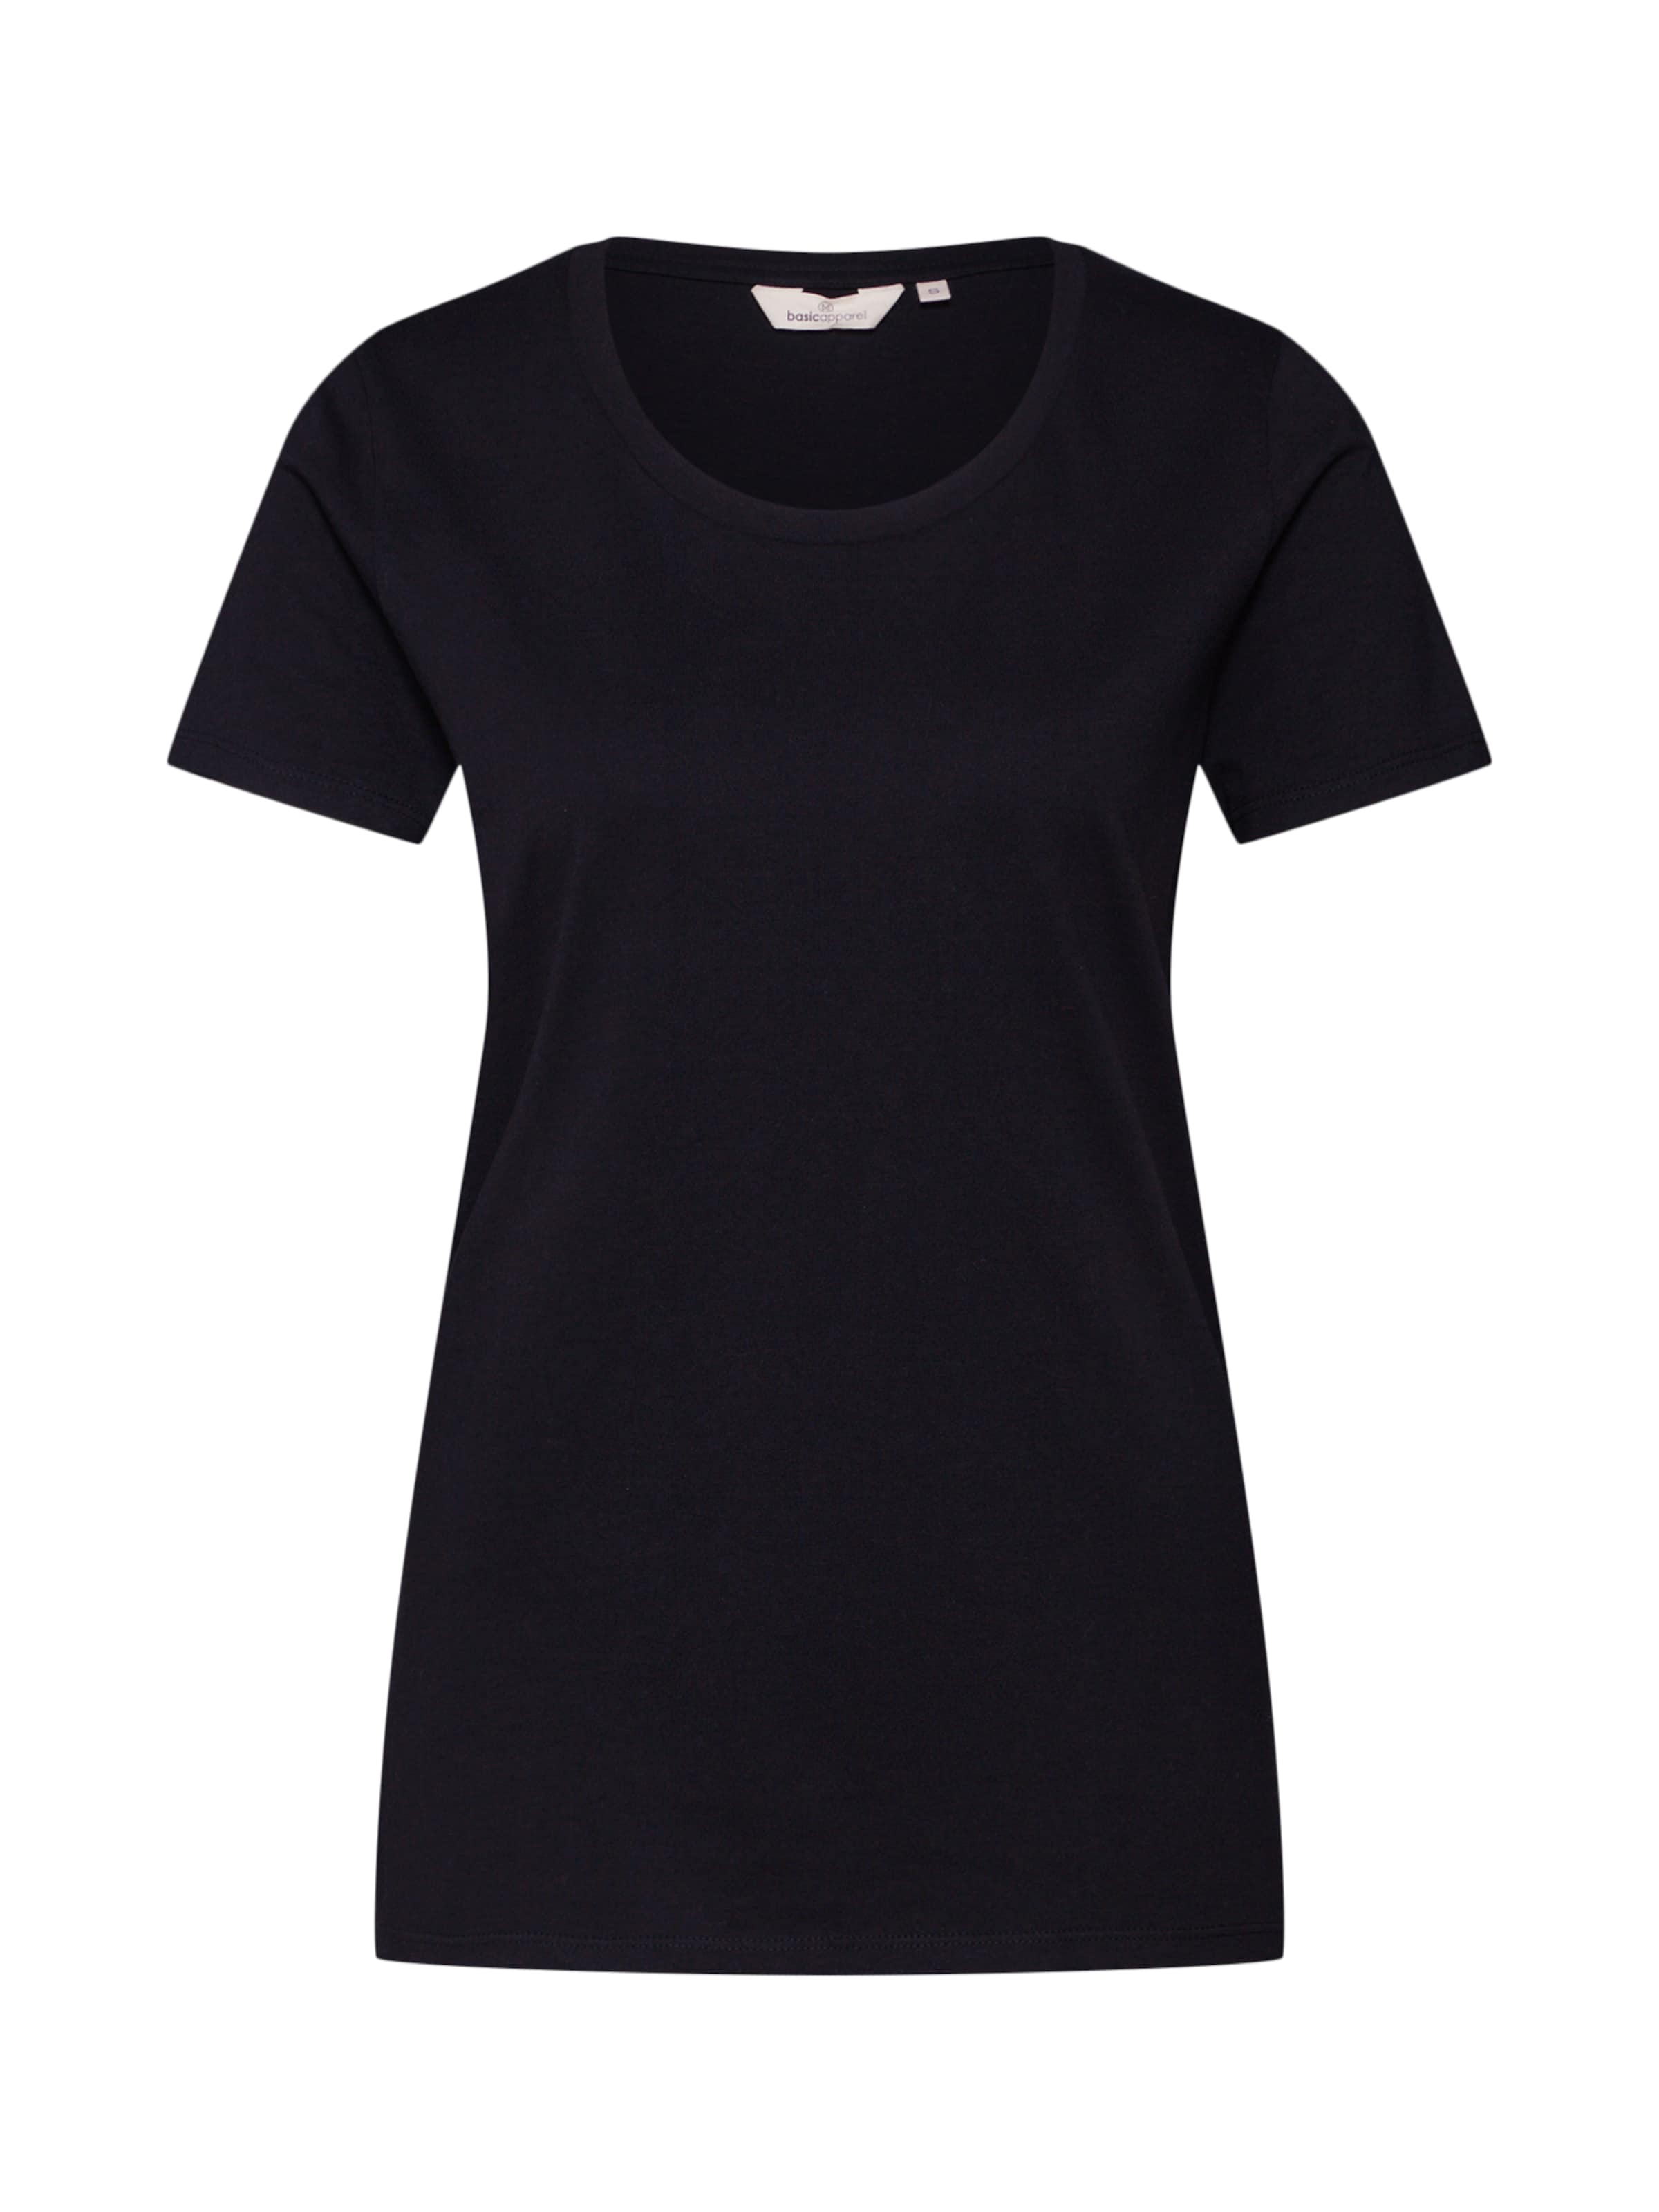 'rebekka' Noir Apparel T En Basic shirt qVGSMUzp